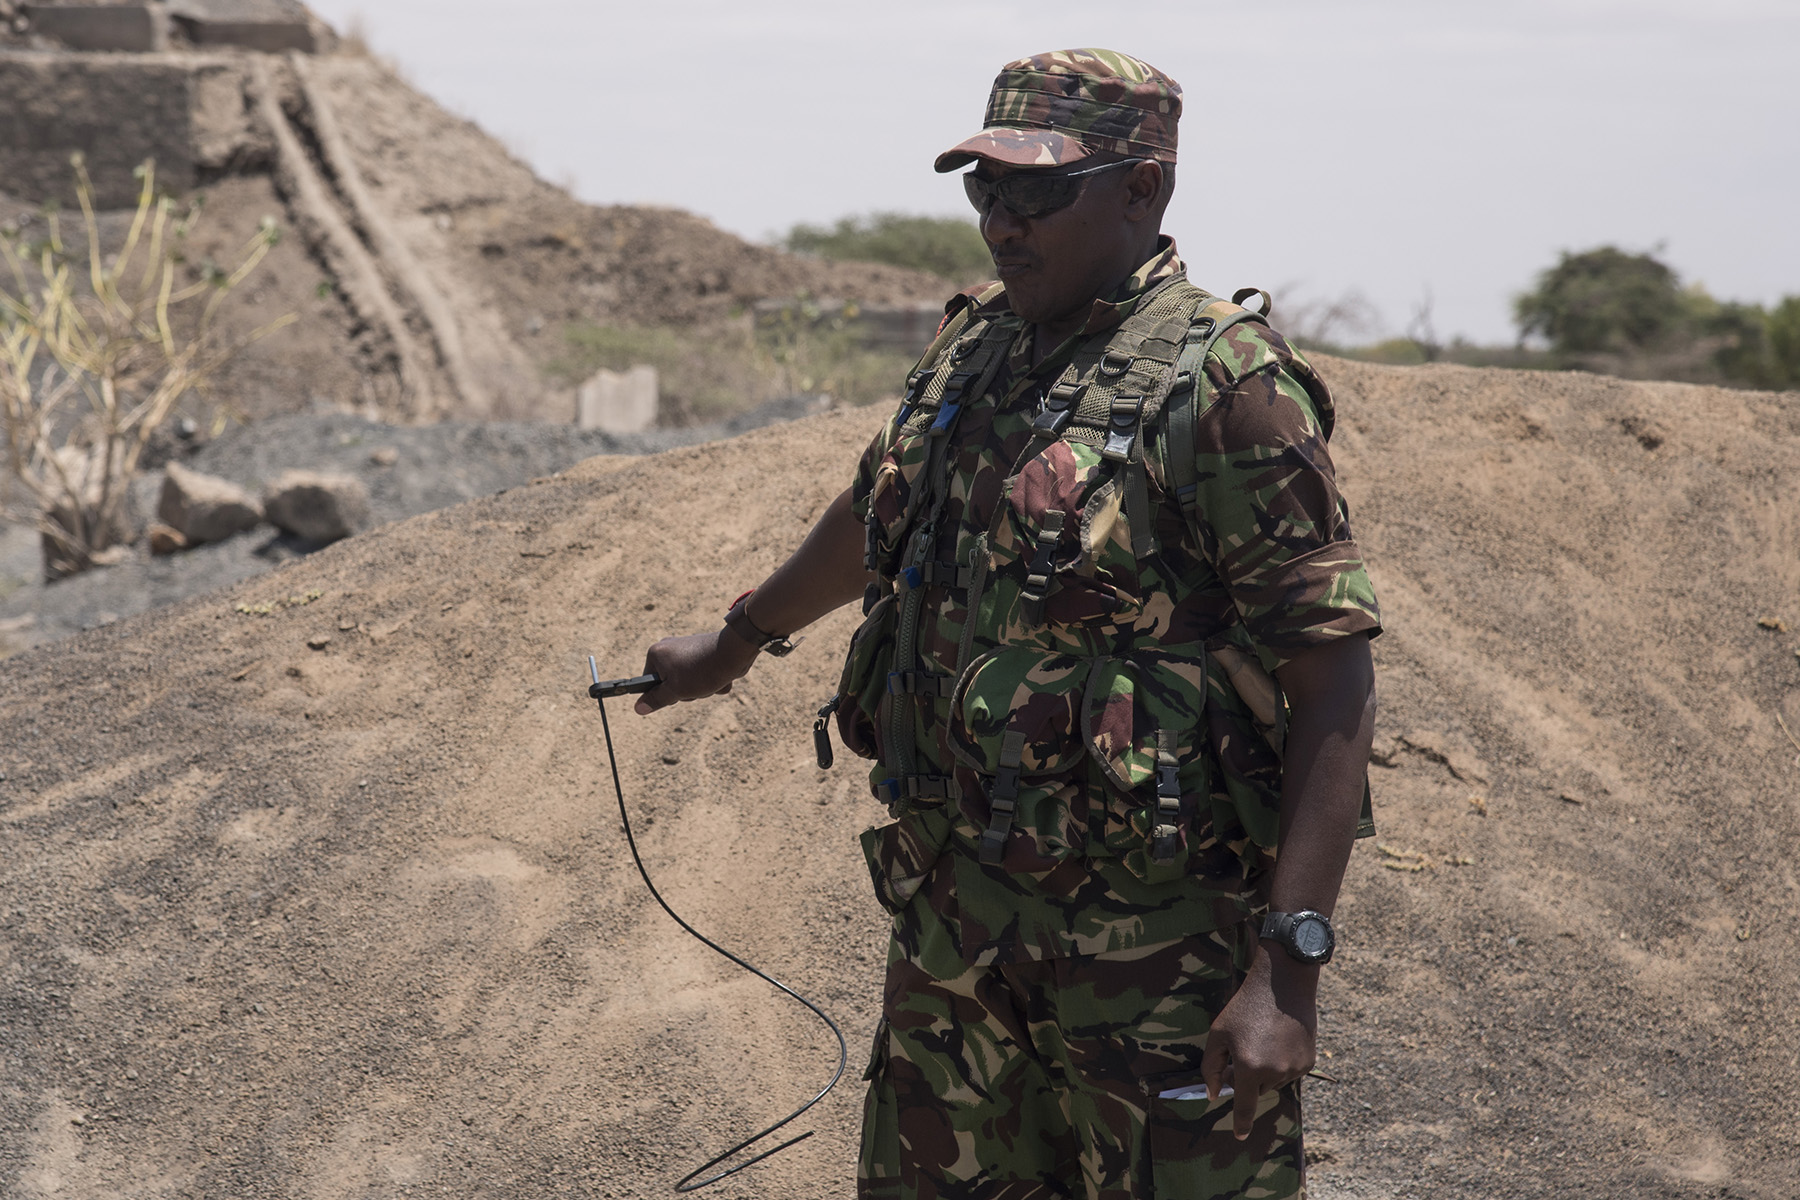 KENYA- Kenya Defense Forces Warrant Officer Athumani, squadron sergeant major, prepares a blasting cap during non-electric demolition training taught by U.S. Navy Sailors from Task Force Sparta during Deliberate Kindle 2016, Sept. 19, at a training center in Kenya. Deliberate Kindle 2016 is taught by U.S. Navy explosive ordnance disposal technicians and a dive independent duty corpsman assigned to Combined Joint Task Force-Horn of Africa.  It is a four-week Humanitarian Mine Action course designed to provide training in countering improvised explosive devices and unexploded ordnance, medical, and train-the-trainer skills to approximately 53 KDF soldiers in preparation for future deployments with the African Union Mission in Somalia. (U.S. Air Force photo by Staff Sgt. Tiffany DeNault)